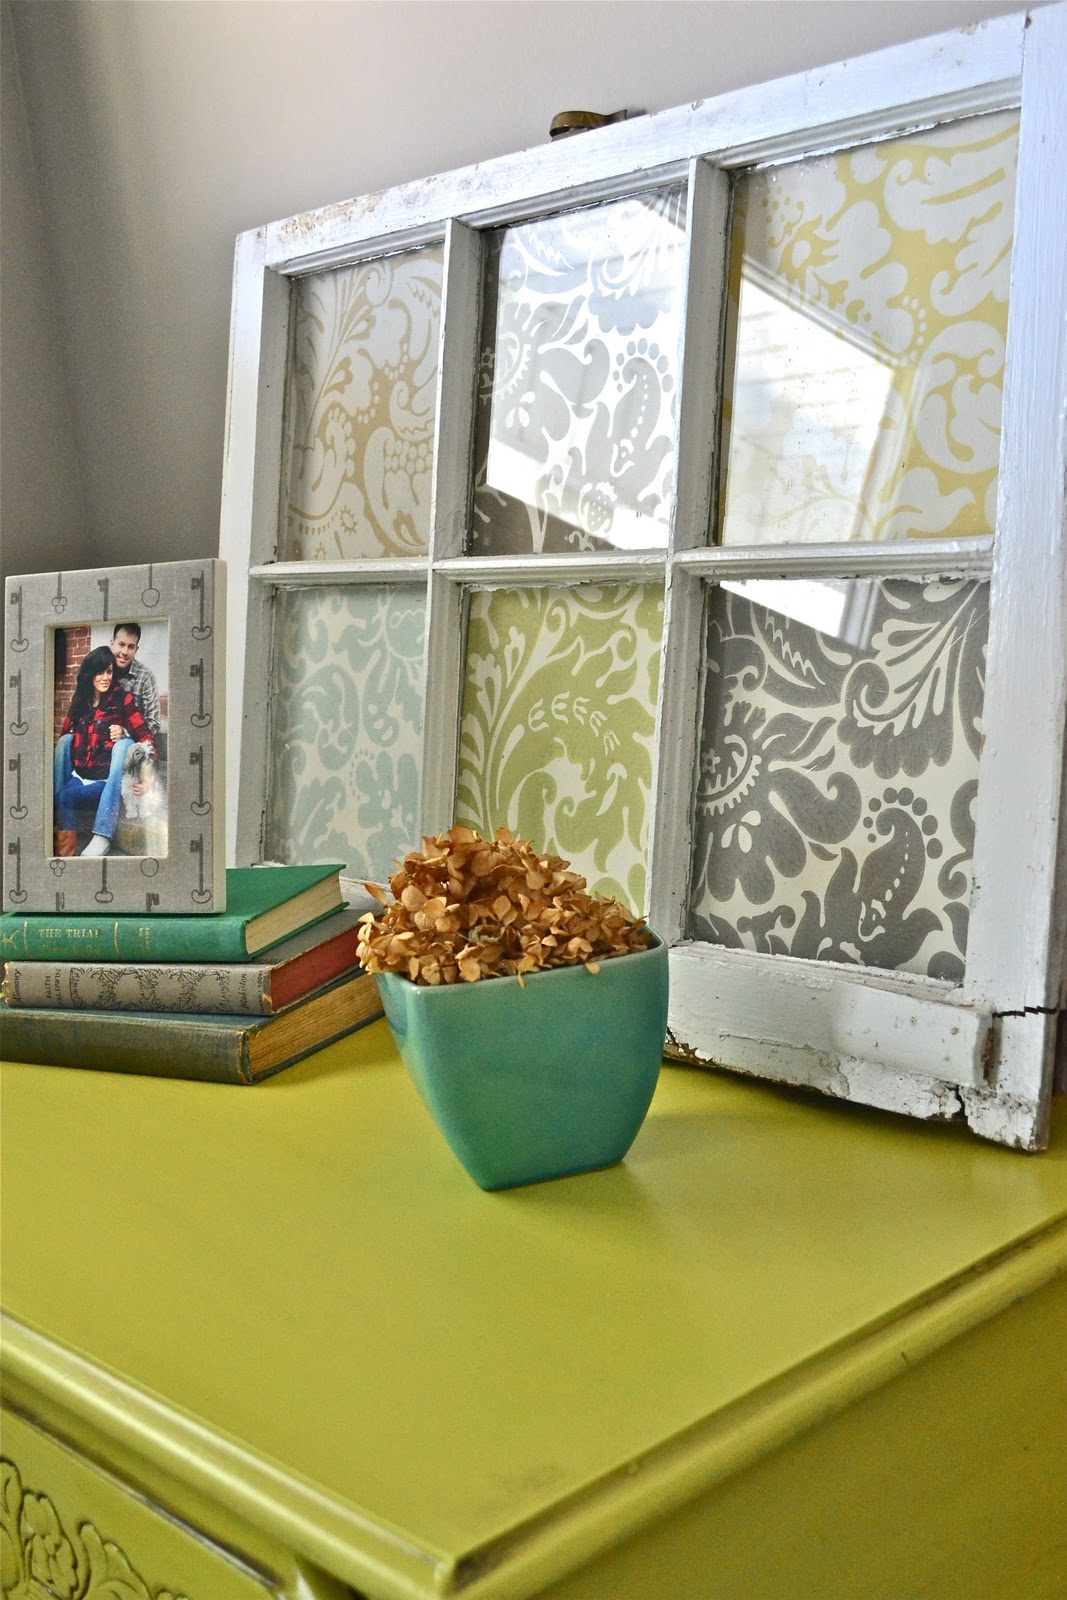 Scrapbook paper in window for decor